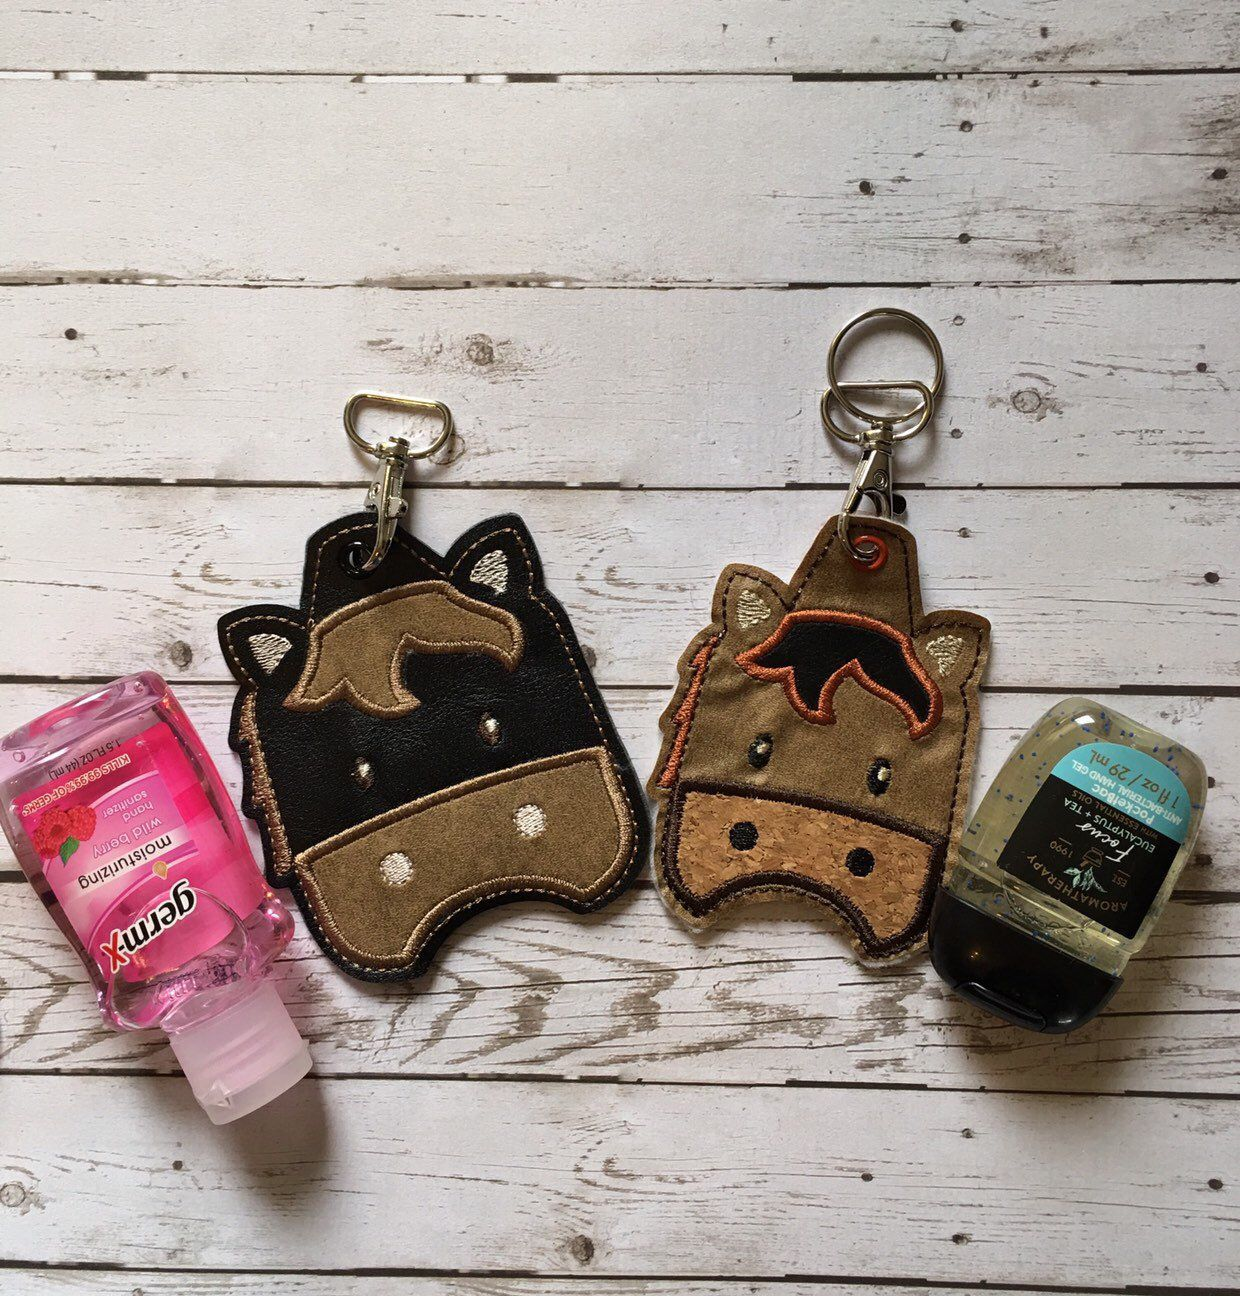 Horse Hand Sanitizer Holder Keychain Hand Sanitizer Keychain 1